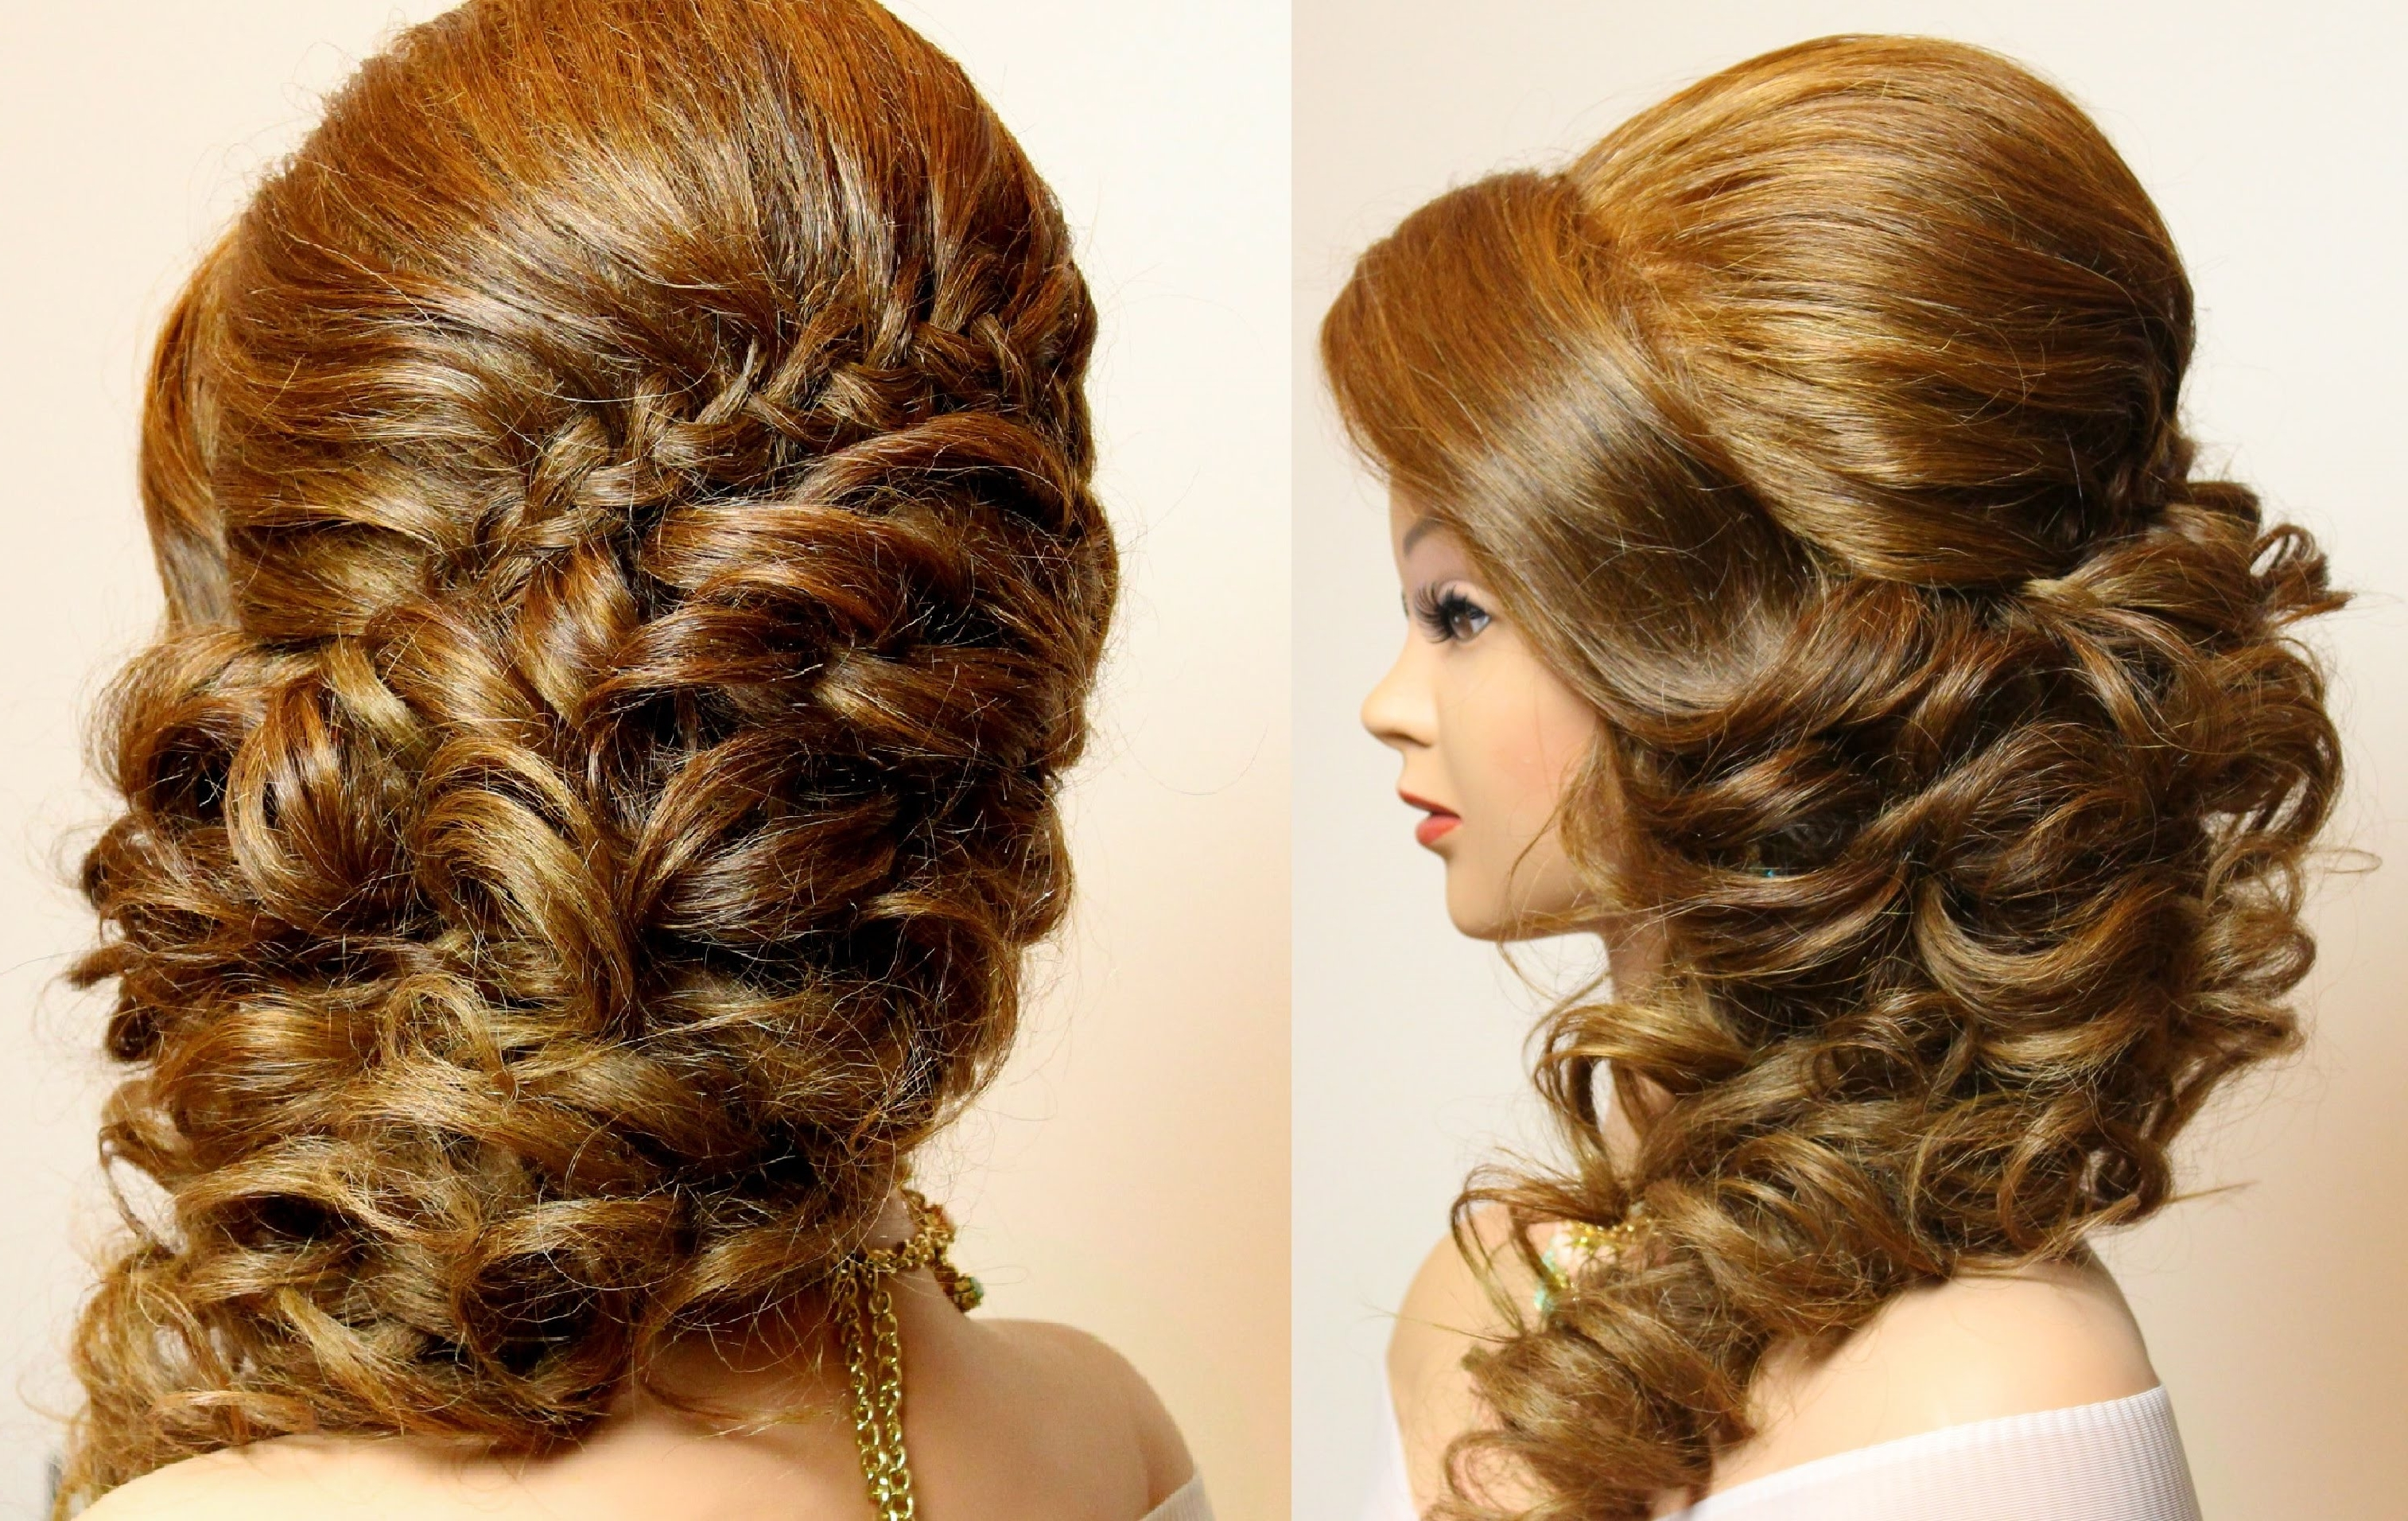 Current Wedding Braided Hairstyles For Long Hair Intended For Bridal Hairstyle With Braid And Curls (View 2 of 15)